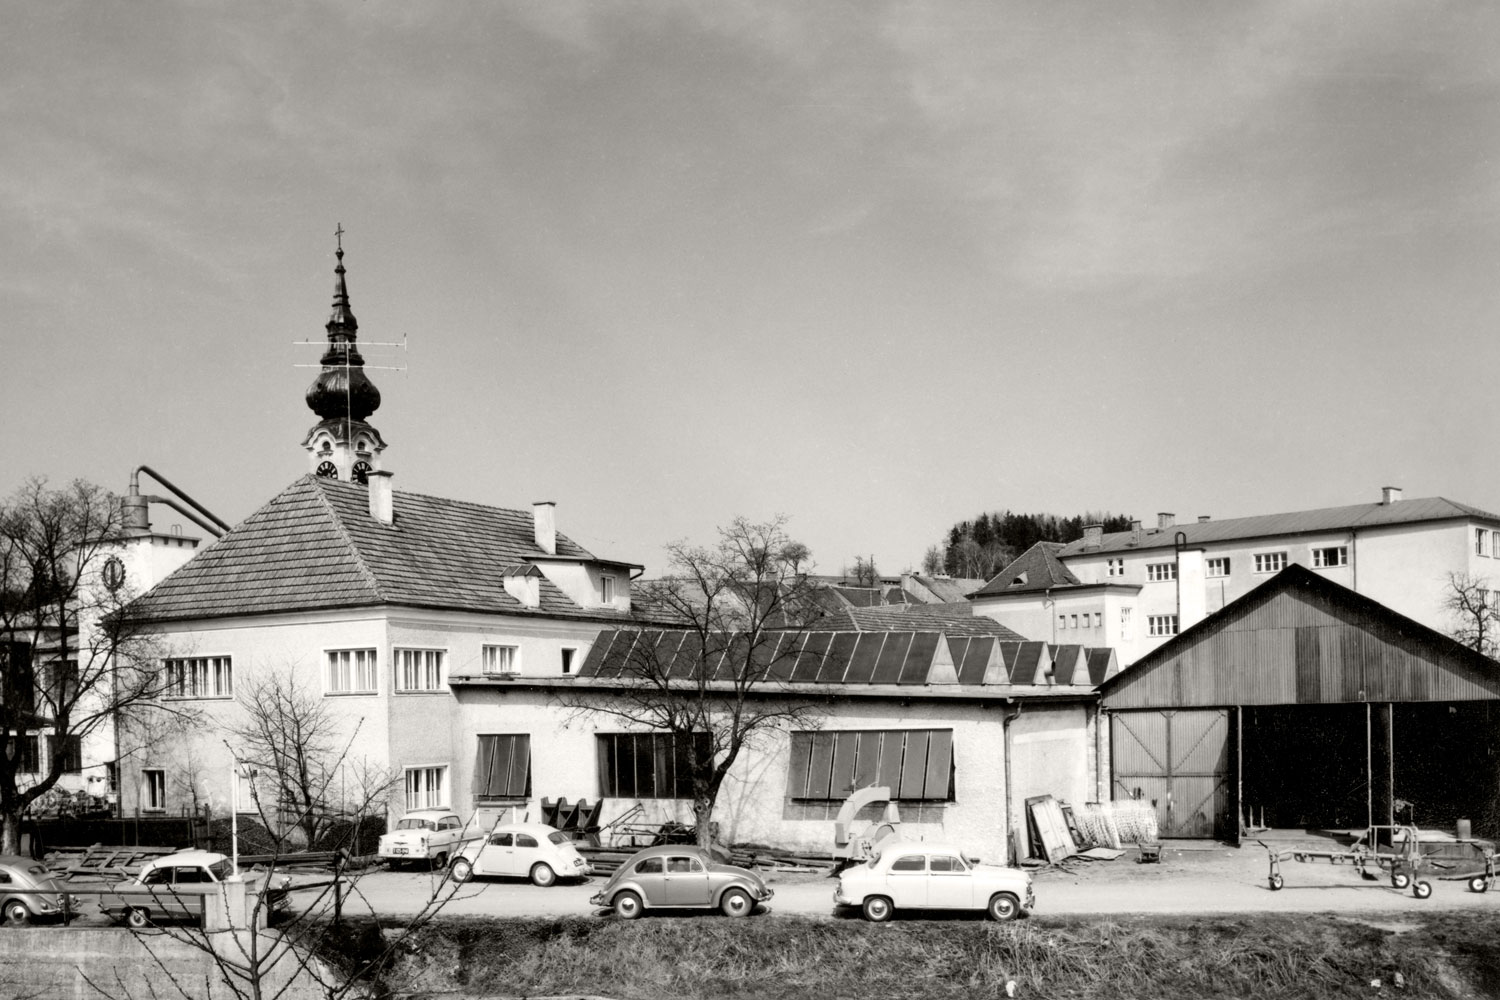 A part of Grieskirchen's town centre: PÖTTINGER Plant I around 1960. The VW Beetle is clearly popular among PÖTTINGER employees.